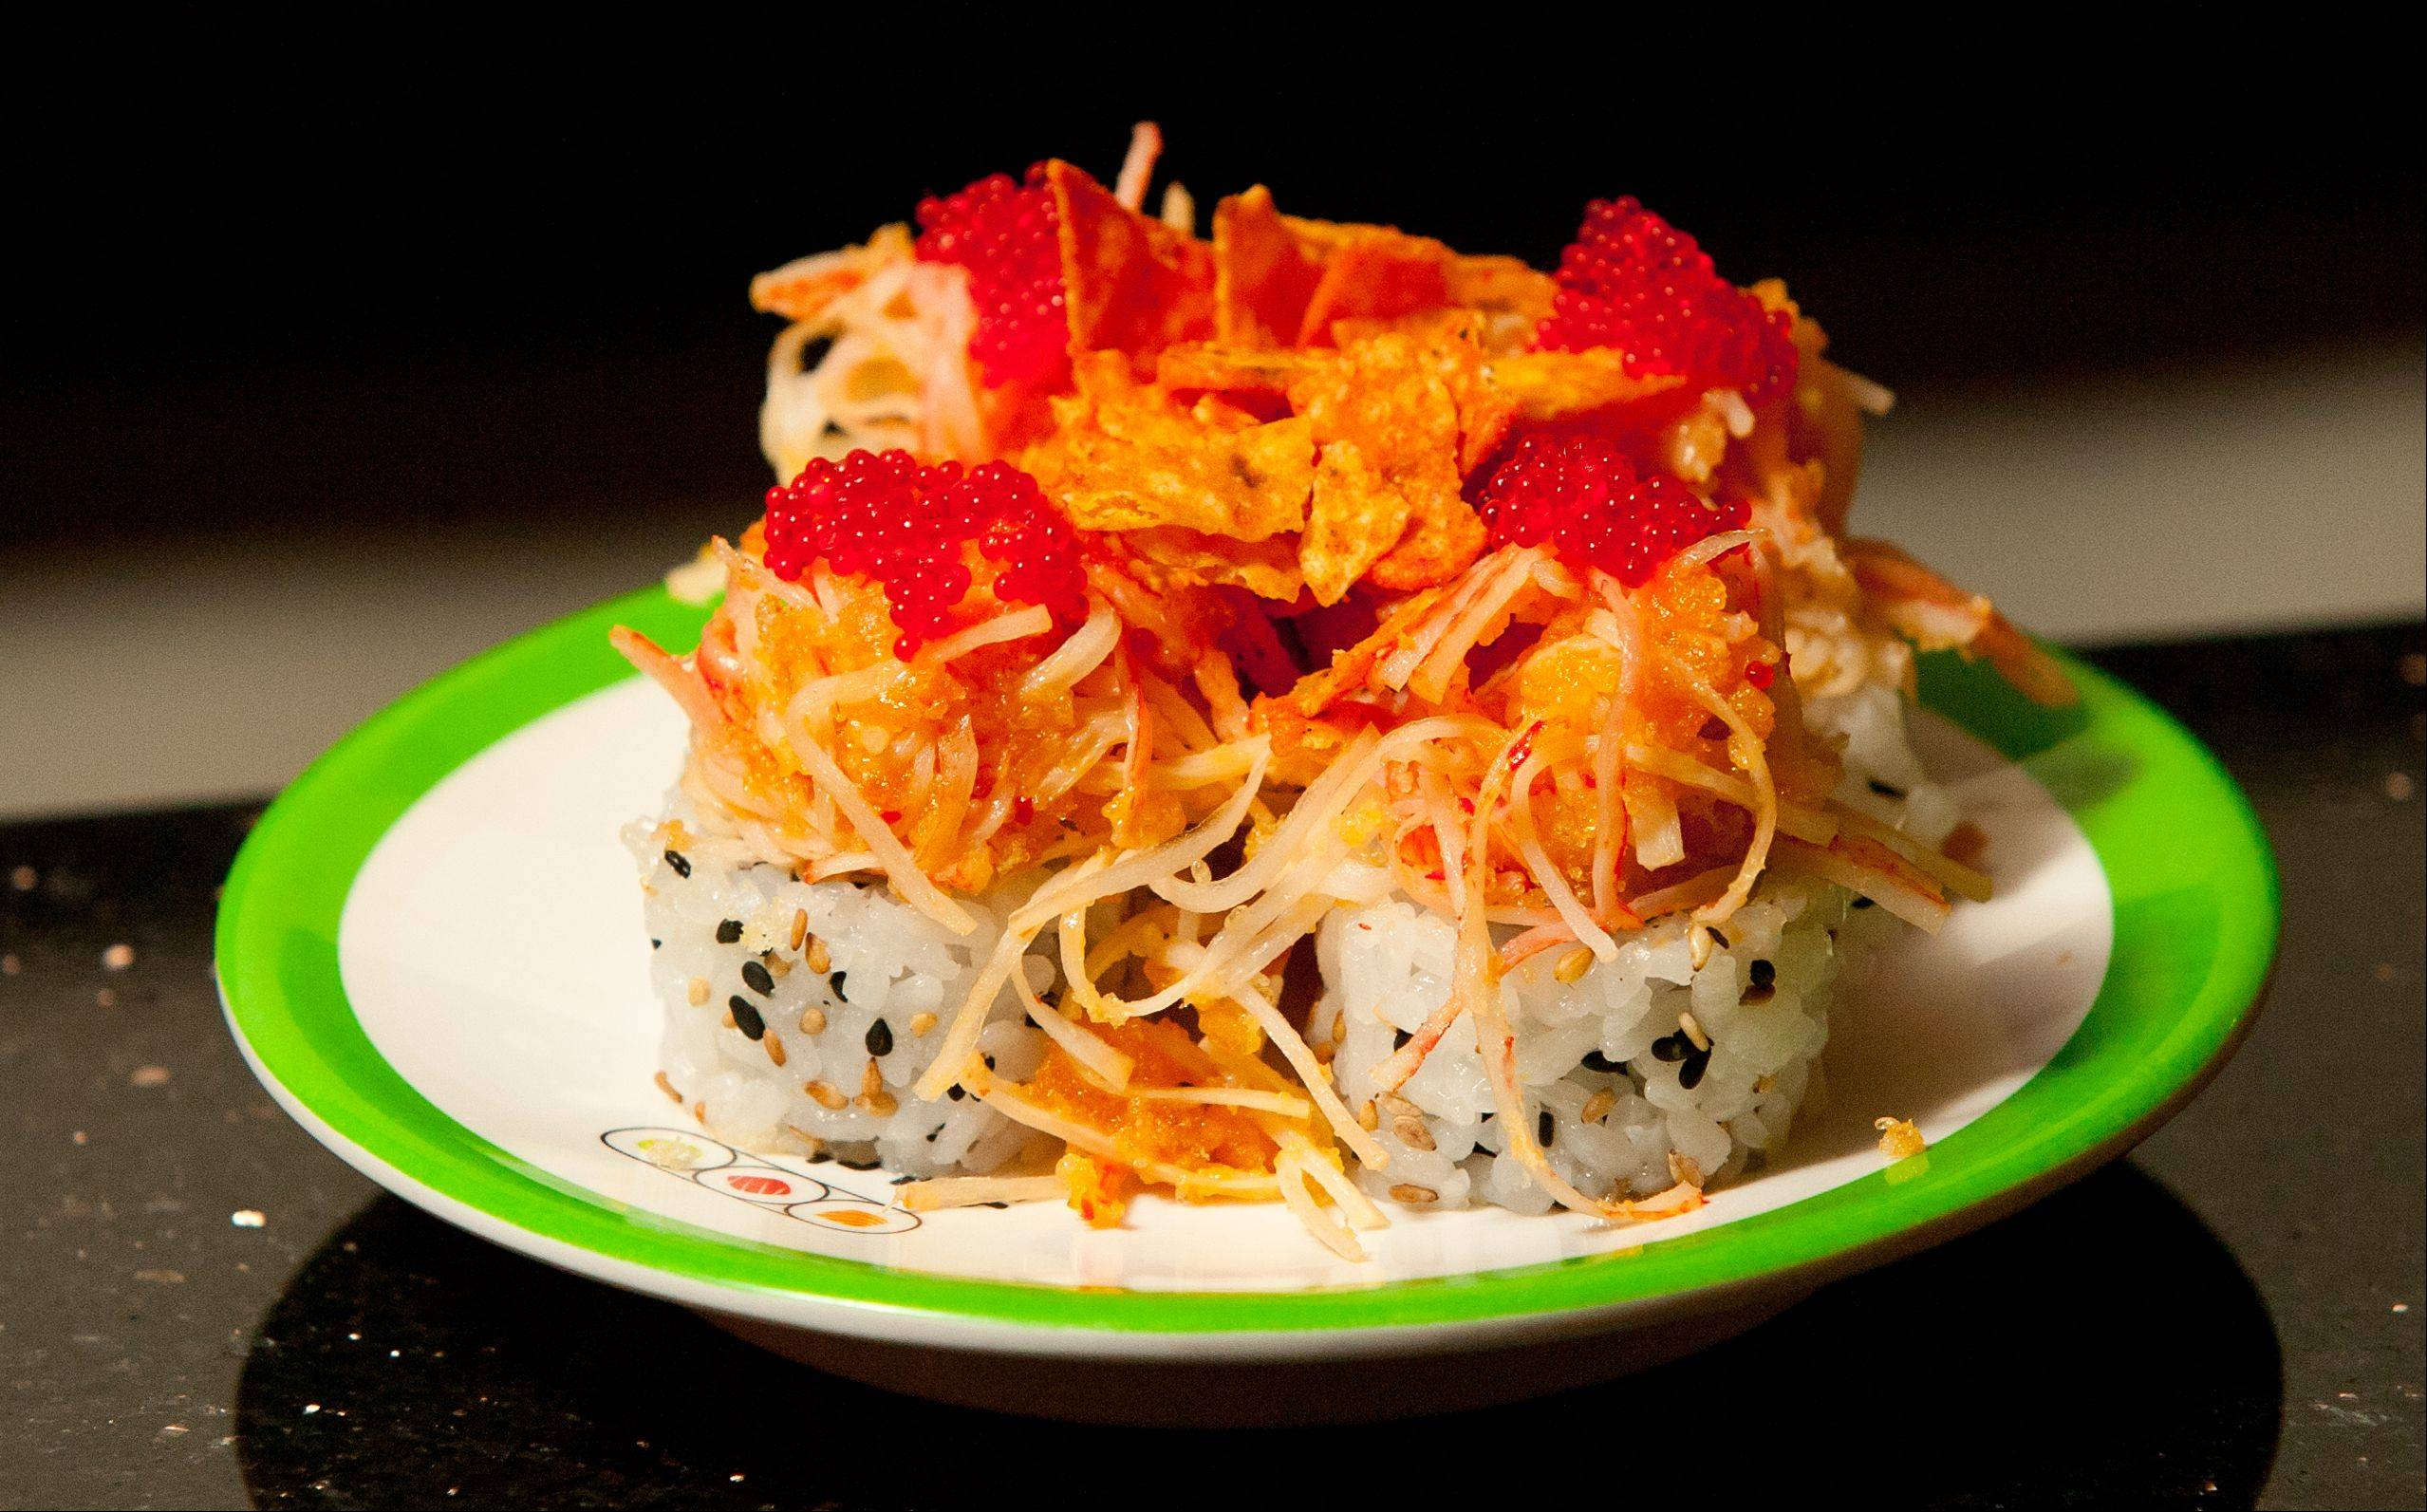 Toyko Sandwich is among the not-to-be-missed items at Sushi + Rotary Sushi Bar.